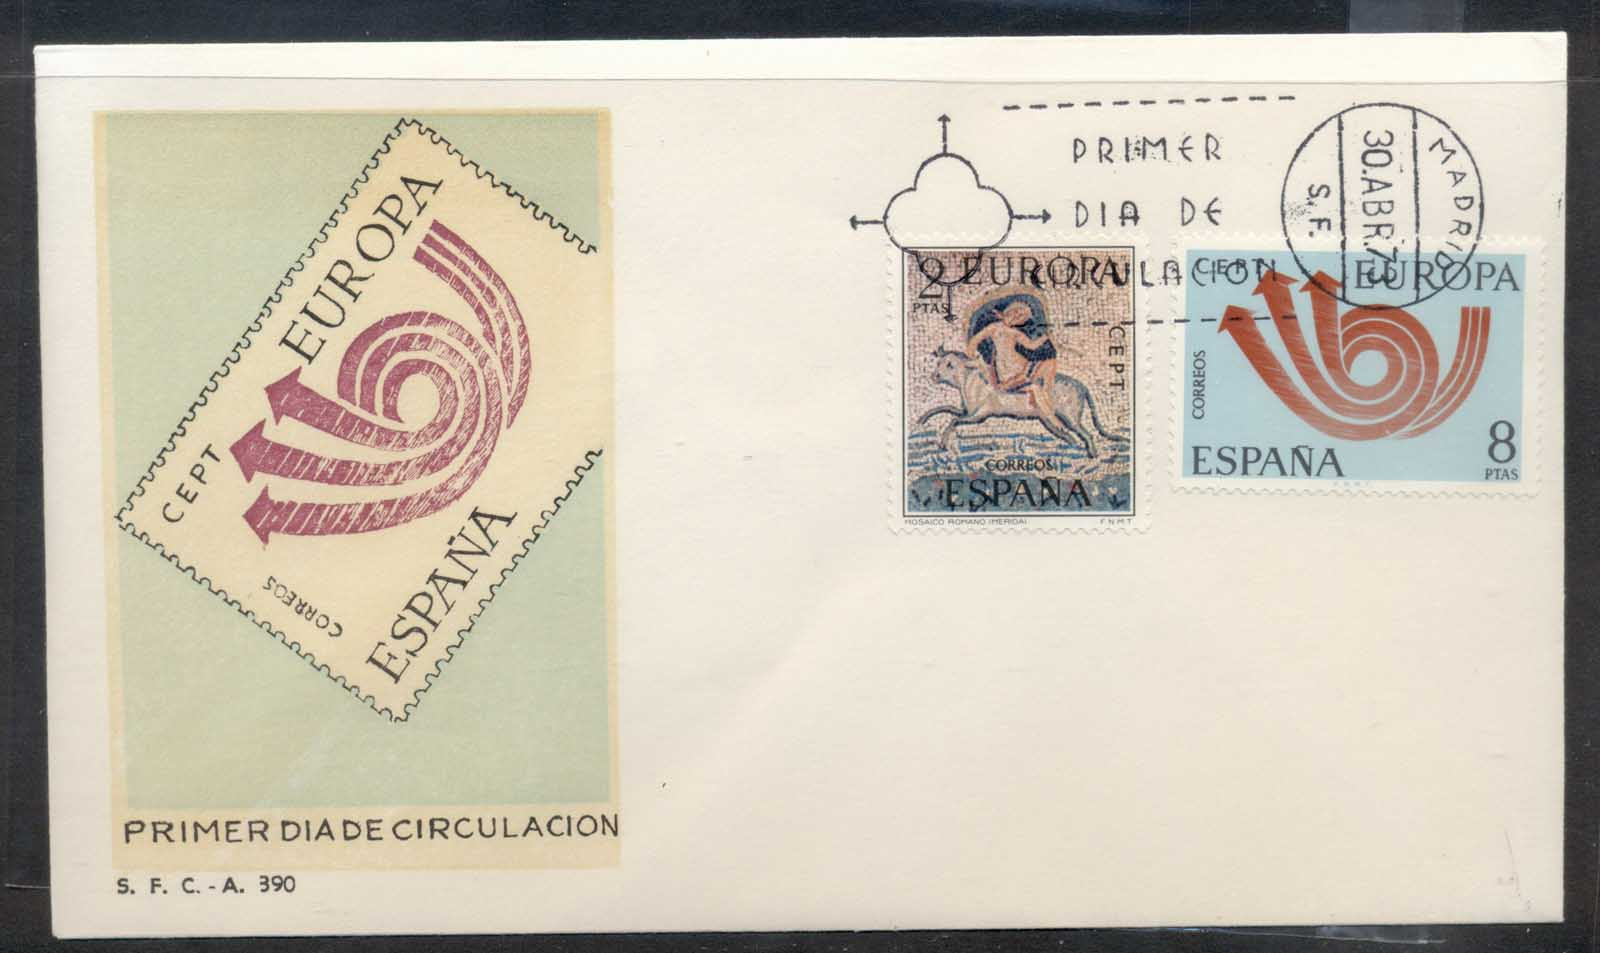 Spain 1973 Europa Posthorn Arrow FDC